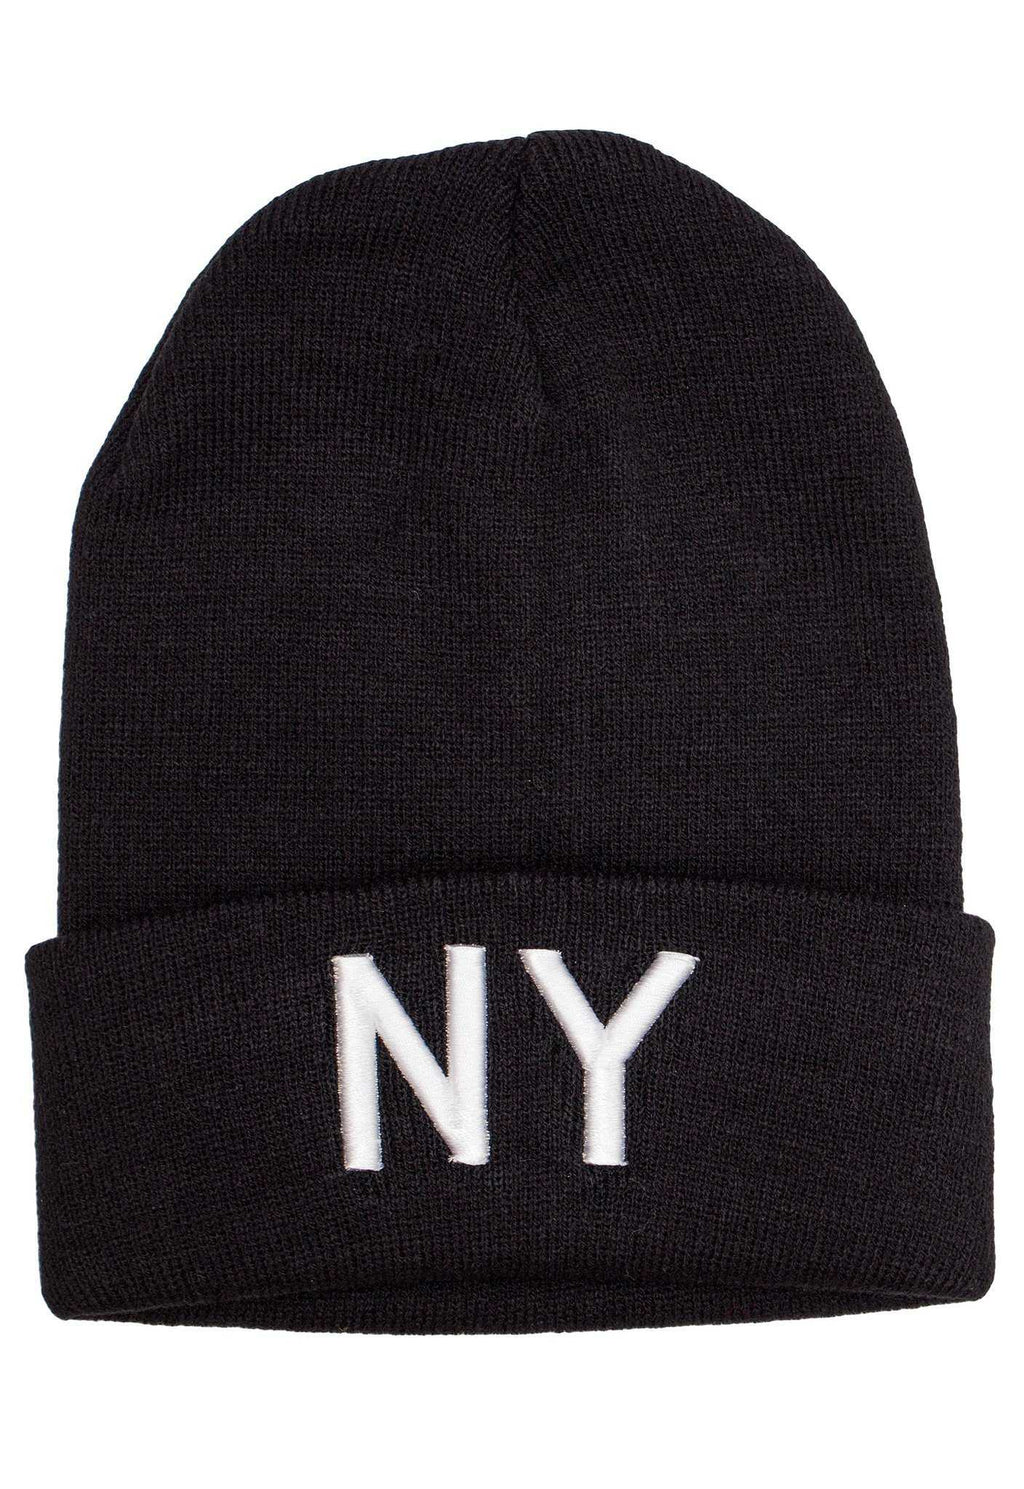 Accessories - NY Beanie - White